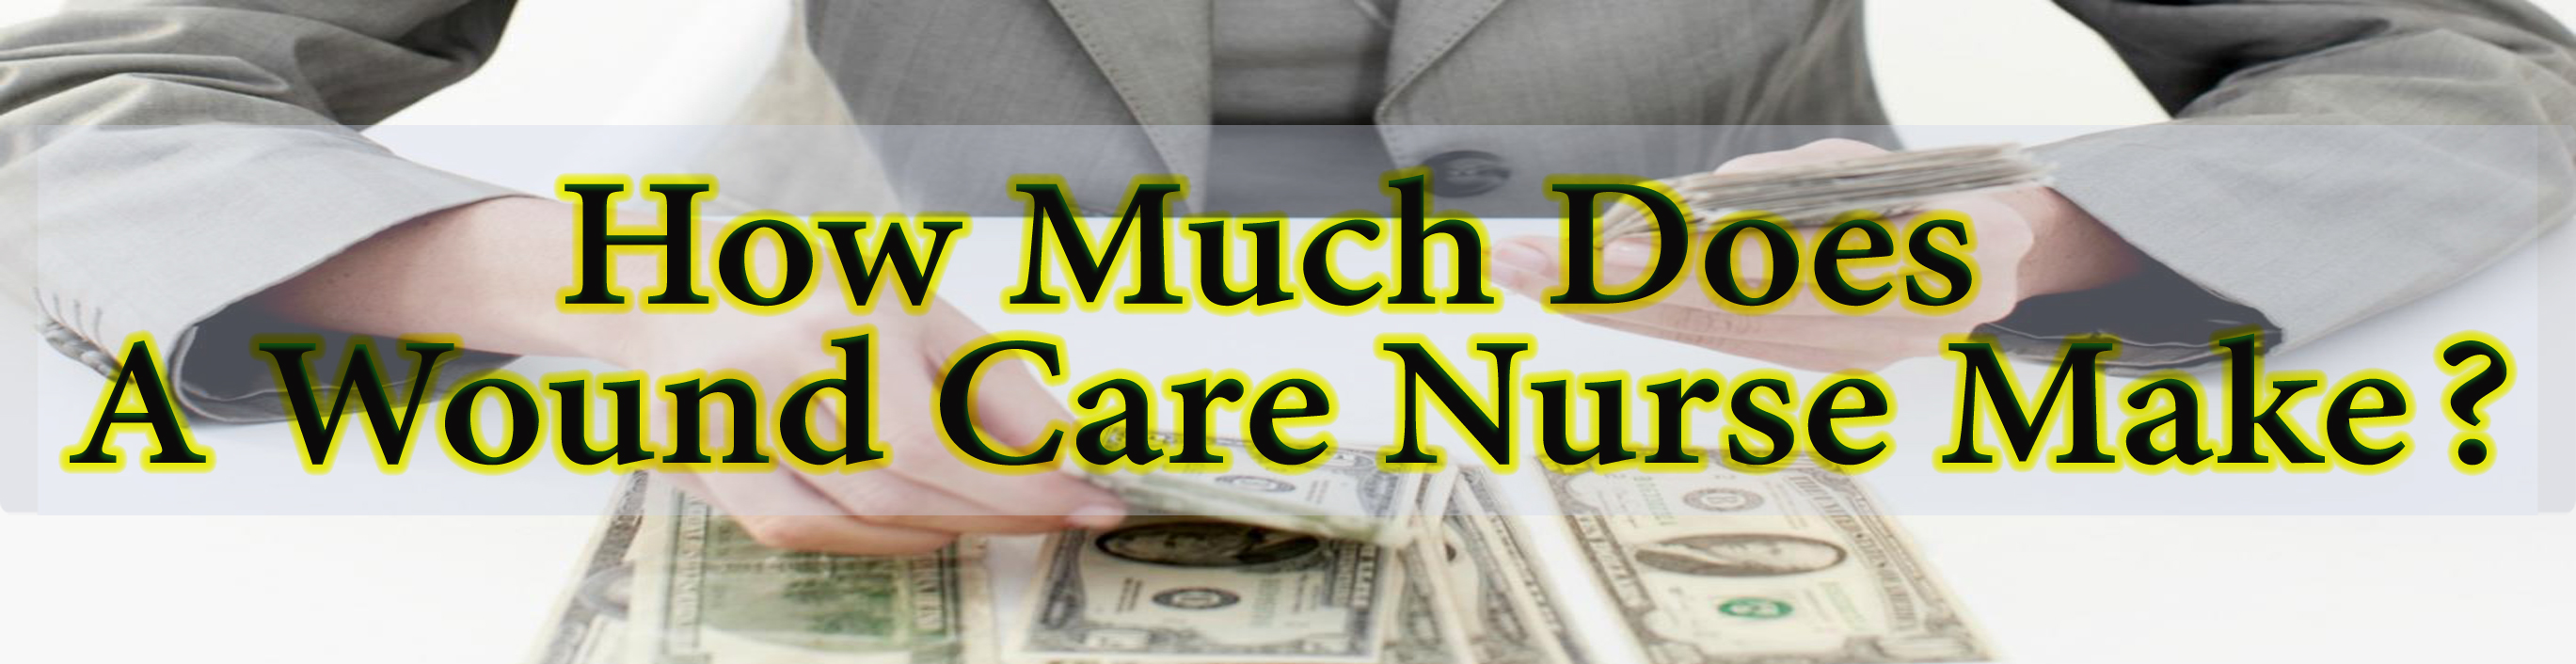 How much does a wound care nurse make educate simplify how much does a wound care nurse make 1betcityfo Choice Image